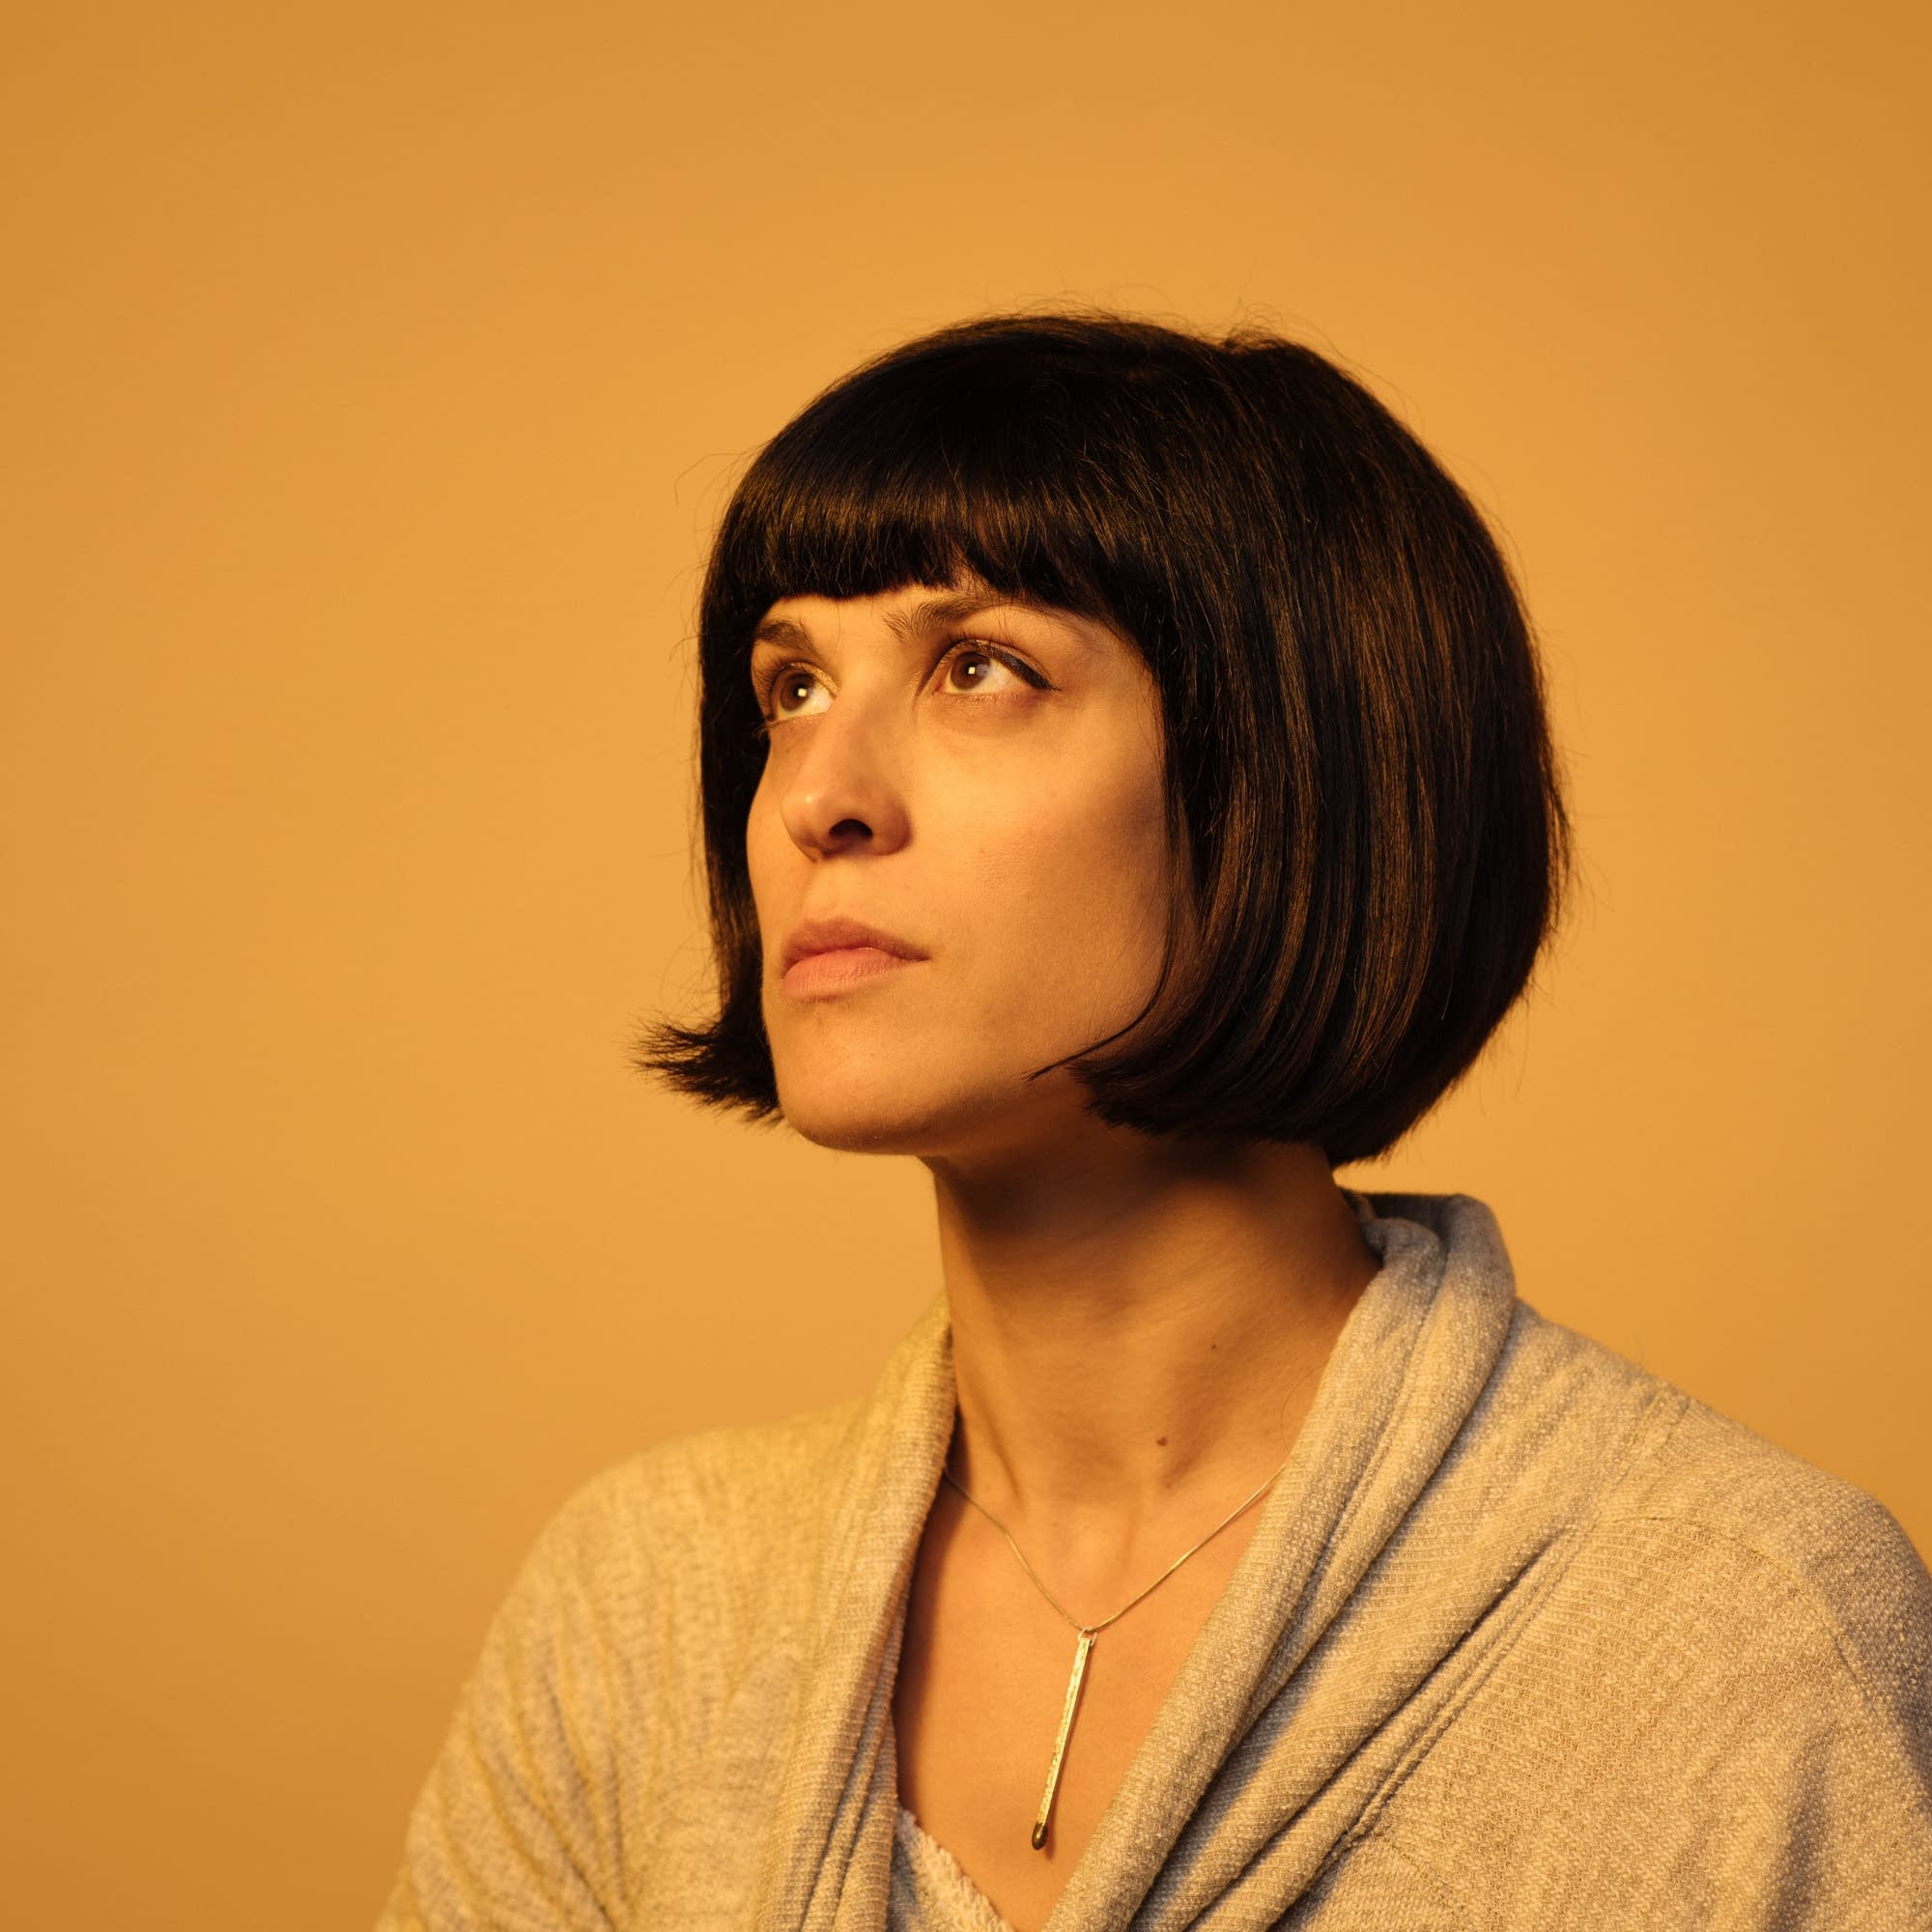 Dessa portrait at The Current